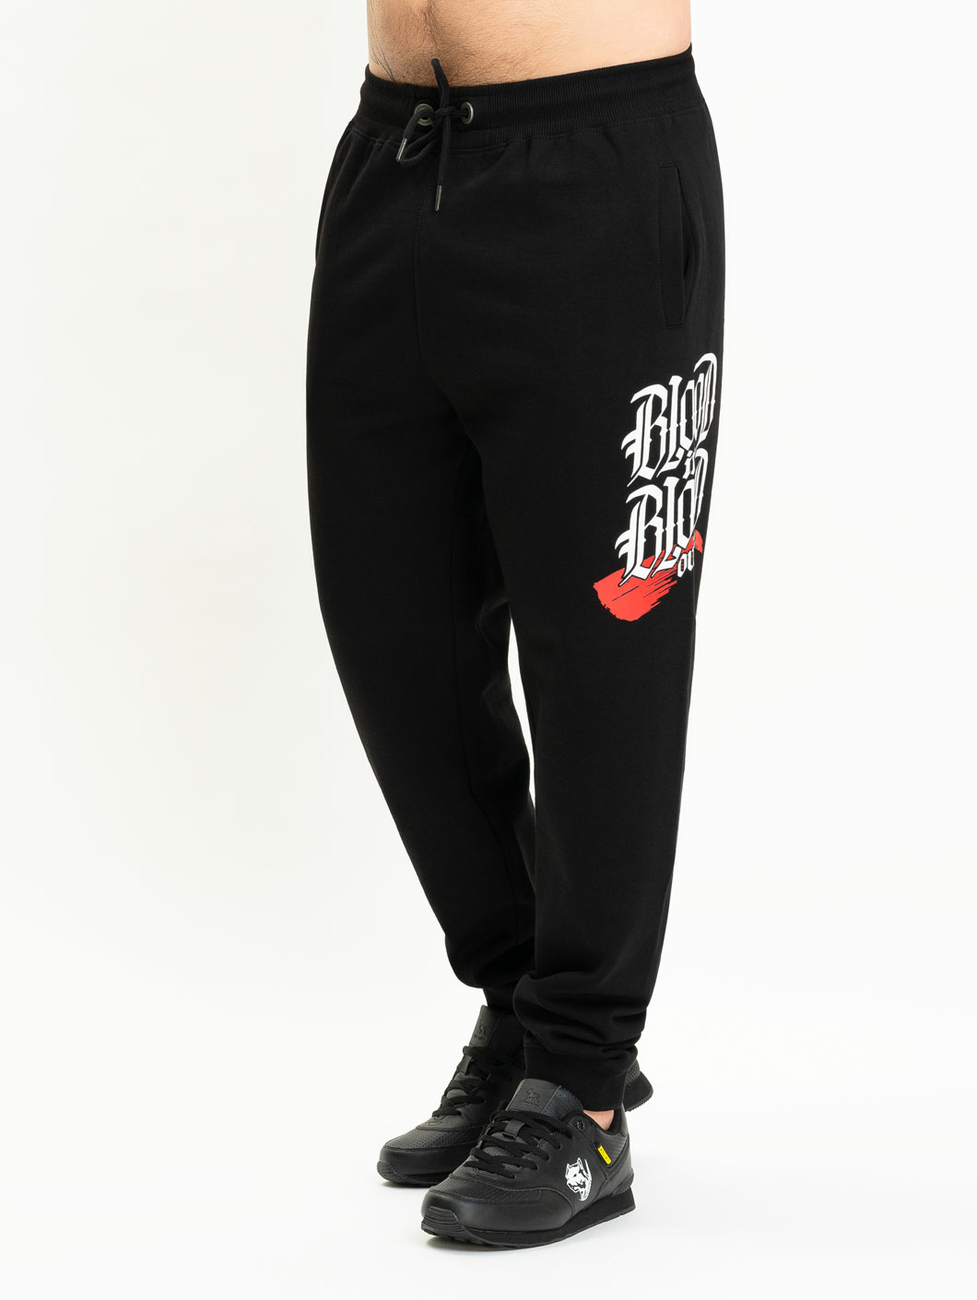 Blood In Blood Out Tranjeros Sweatpants 4XL